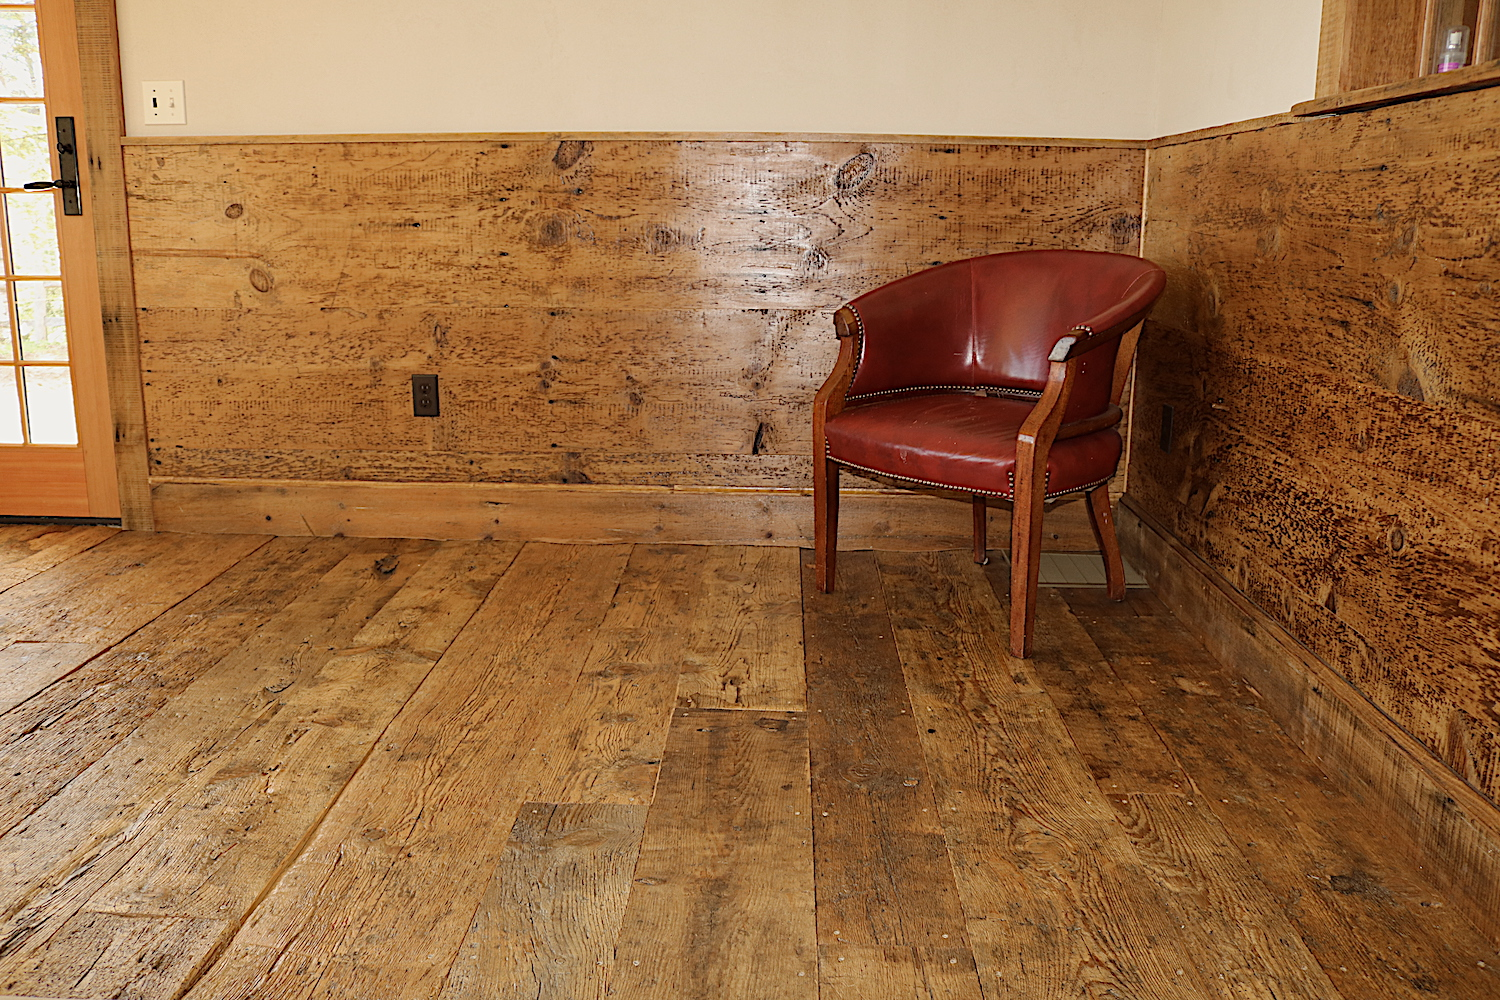 Residential dining room featuring reclaimed barn board flooring in Yarmouth, Maine, sourced by Rousseau Reclaimed Lumber & Flooring